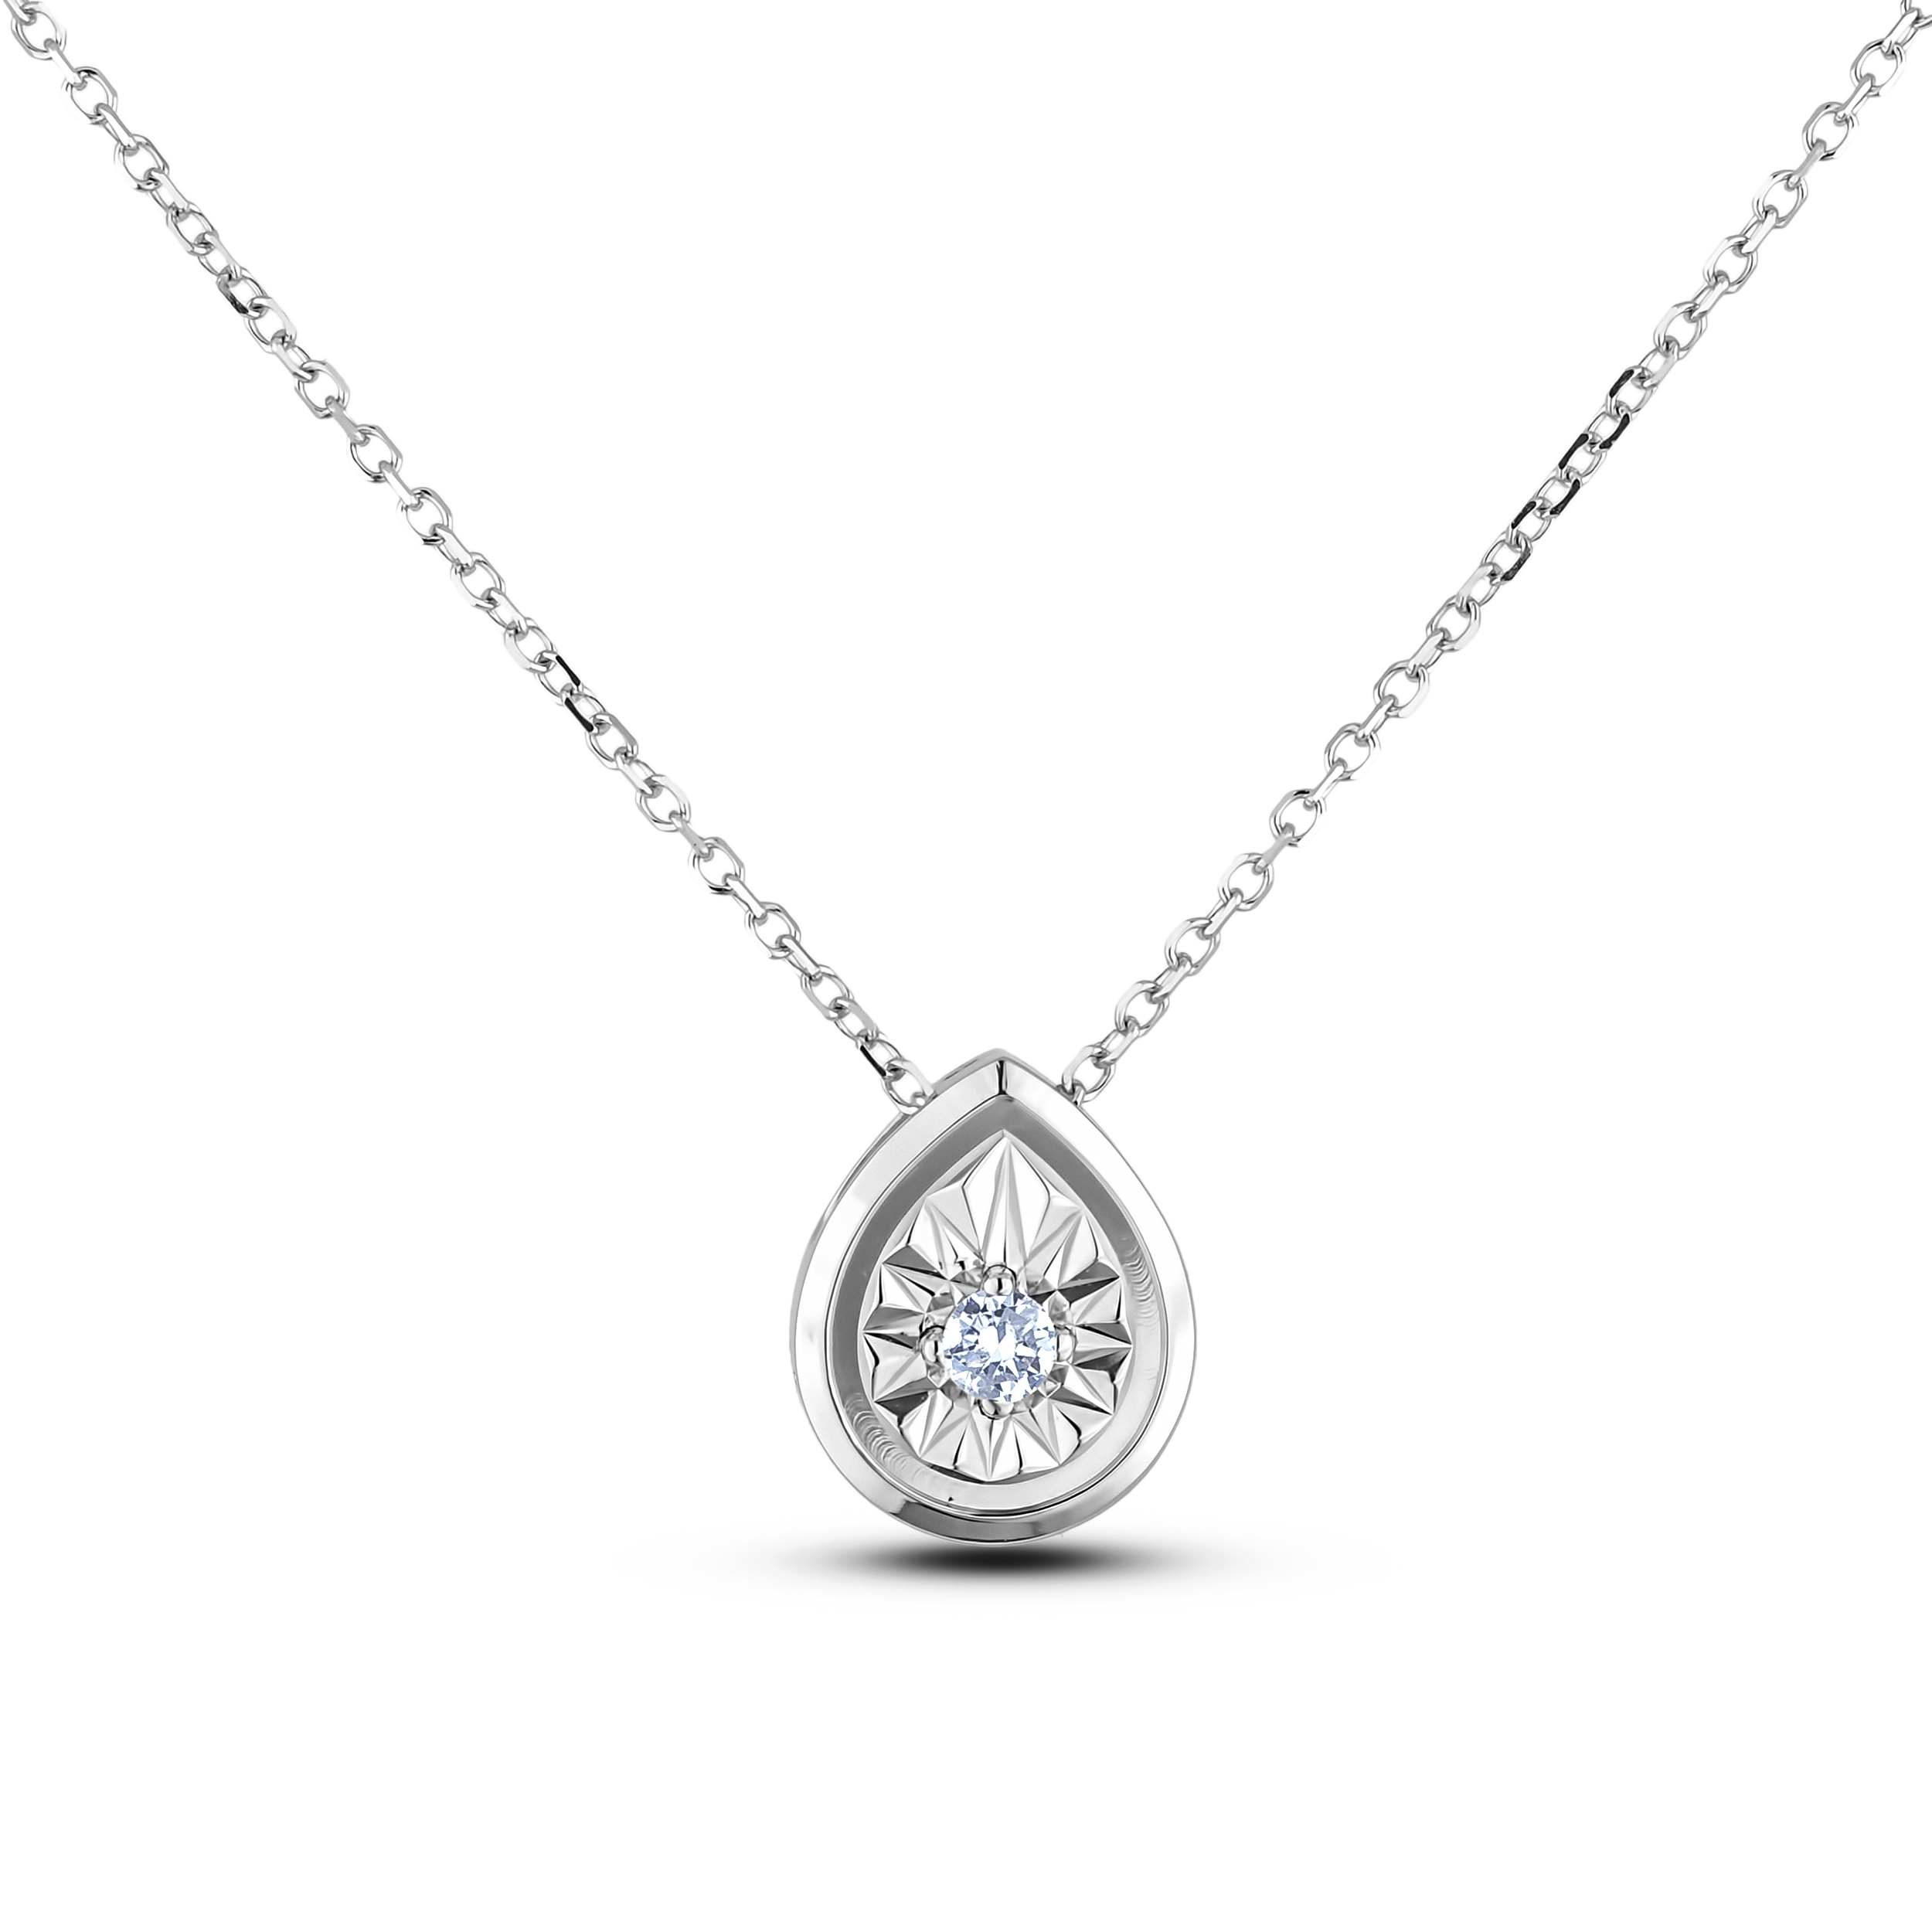 Diamond Pendants SGP382 (Pendants)